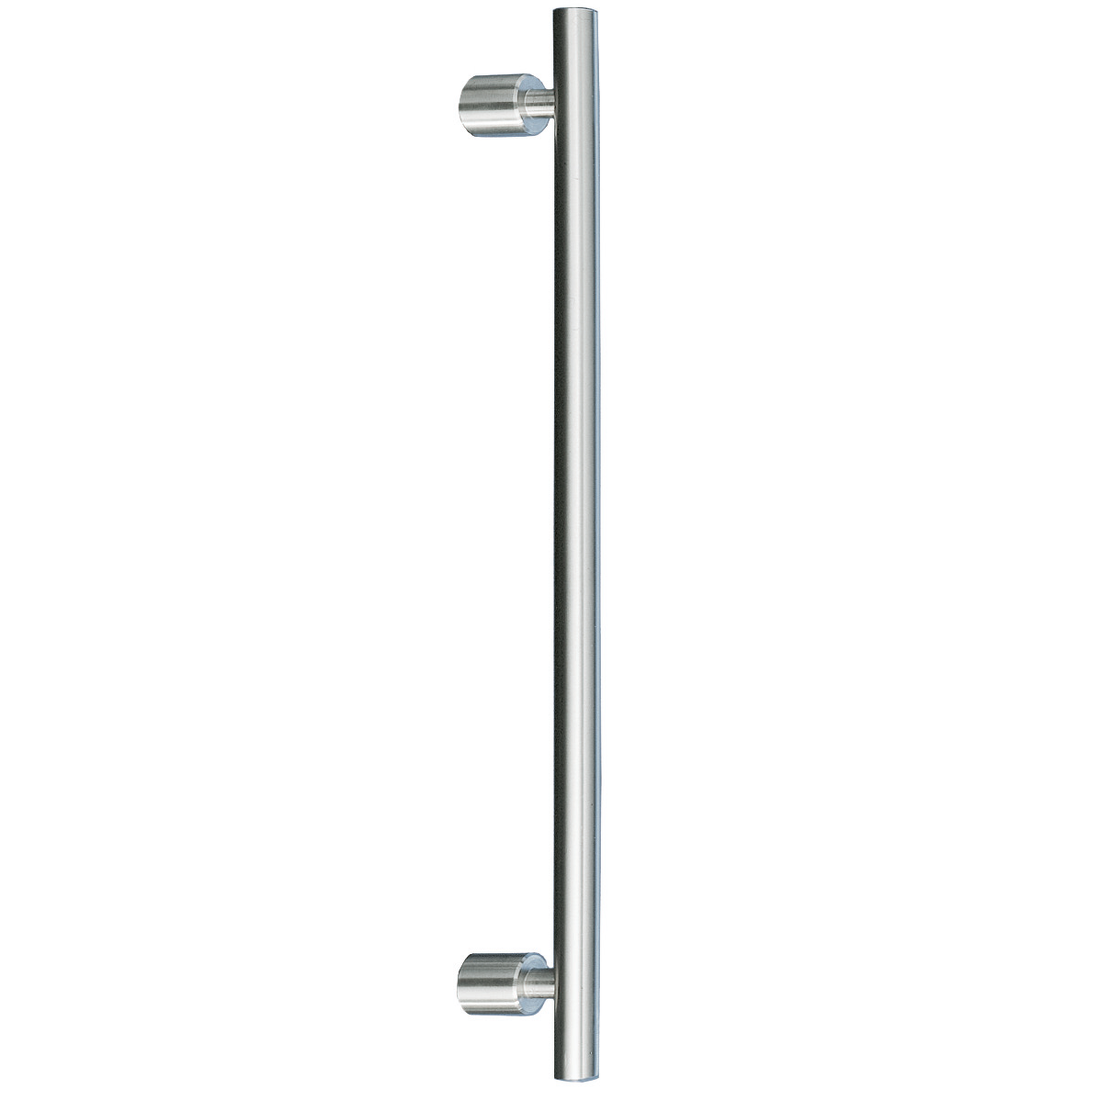 CIMO, PULL HANDLE ø 14MM, SOLID, DRILLING DISTANCE 160MM, SINGLE HANDLE